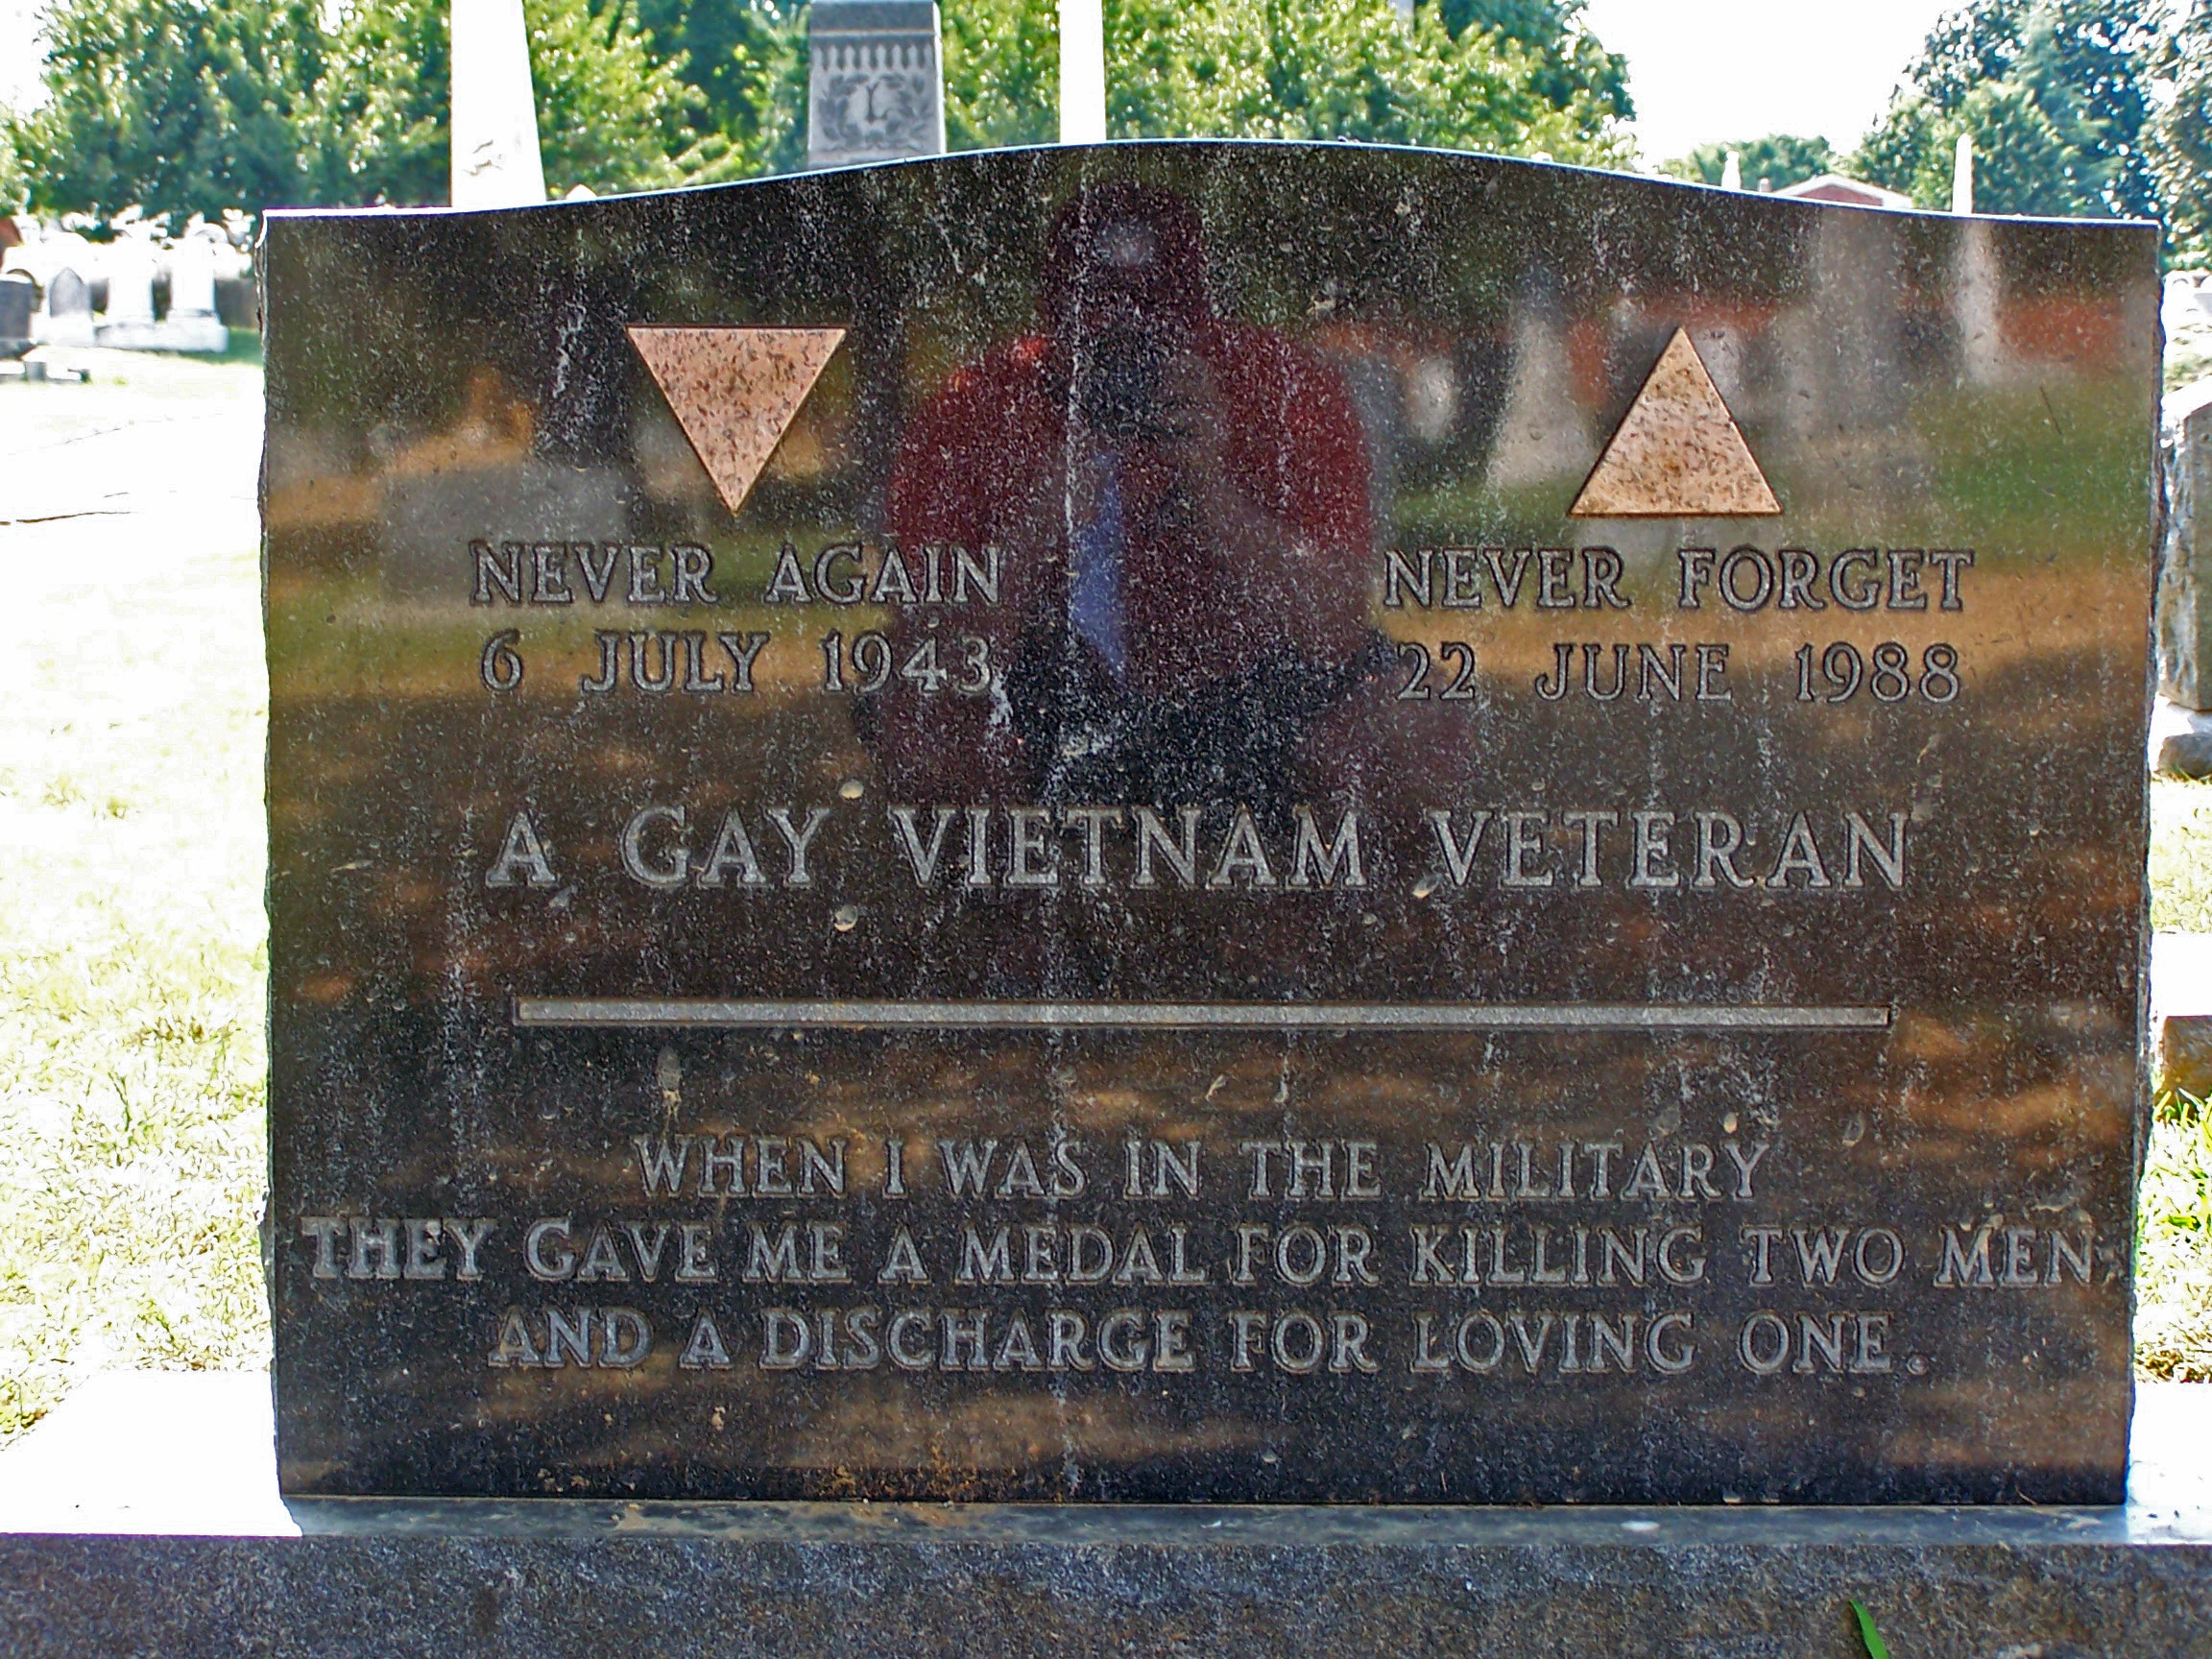 Gay Vietnam Veteran 30